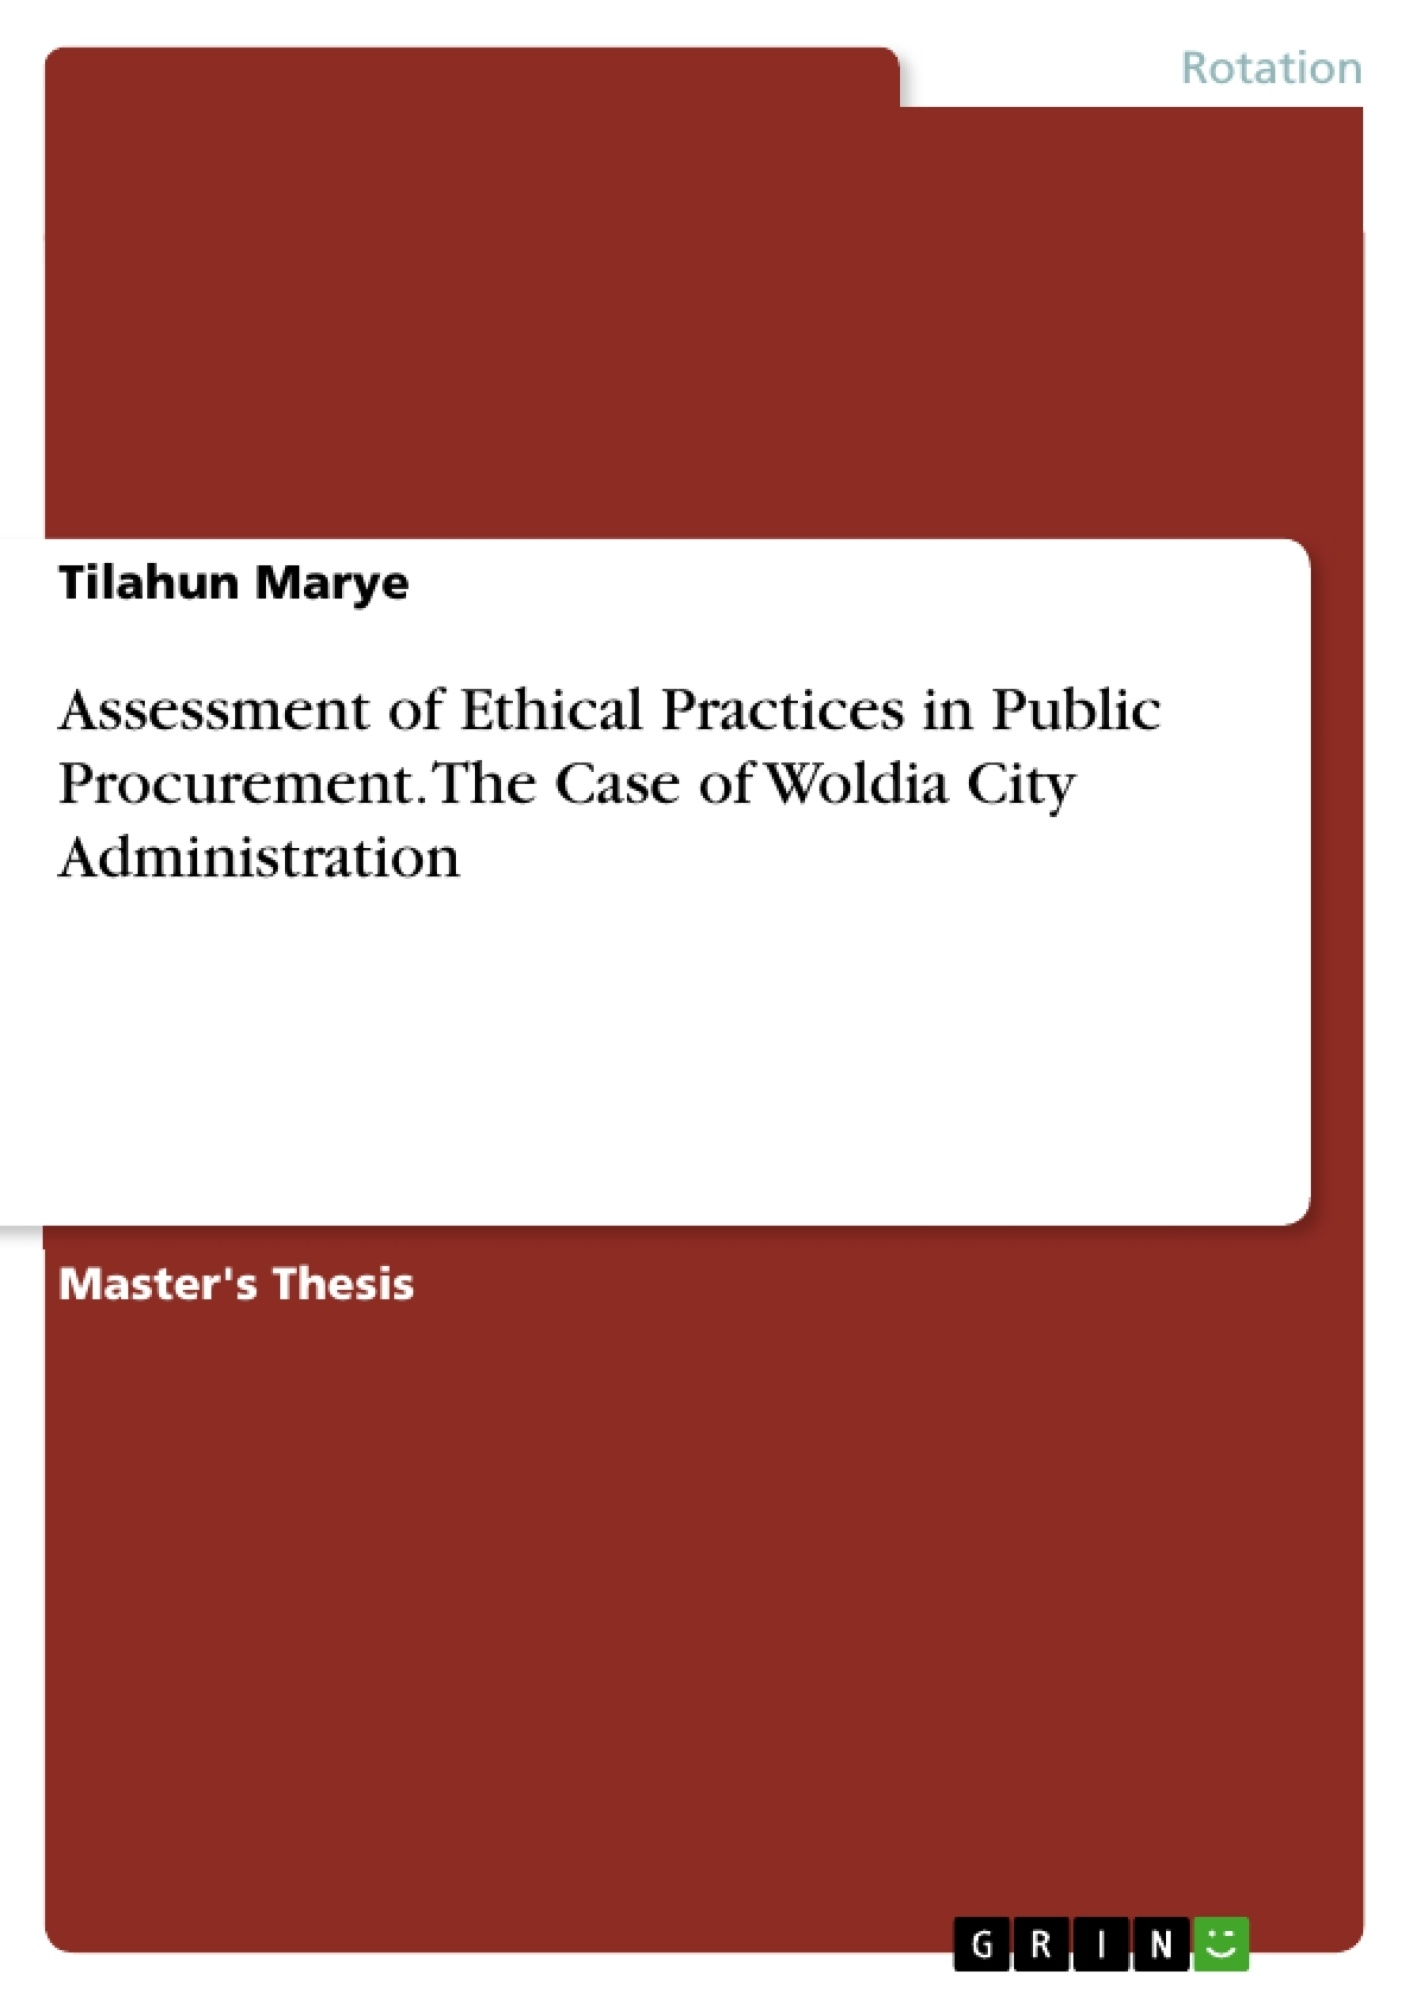 GRIN - Assessment of Ethical Practices in Public Procurement  The Case of  Woldia City Administration